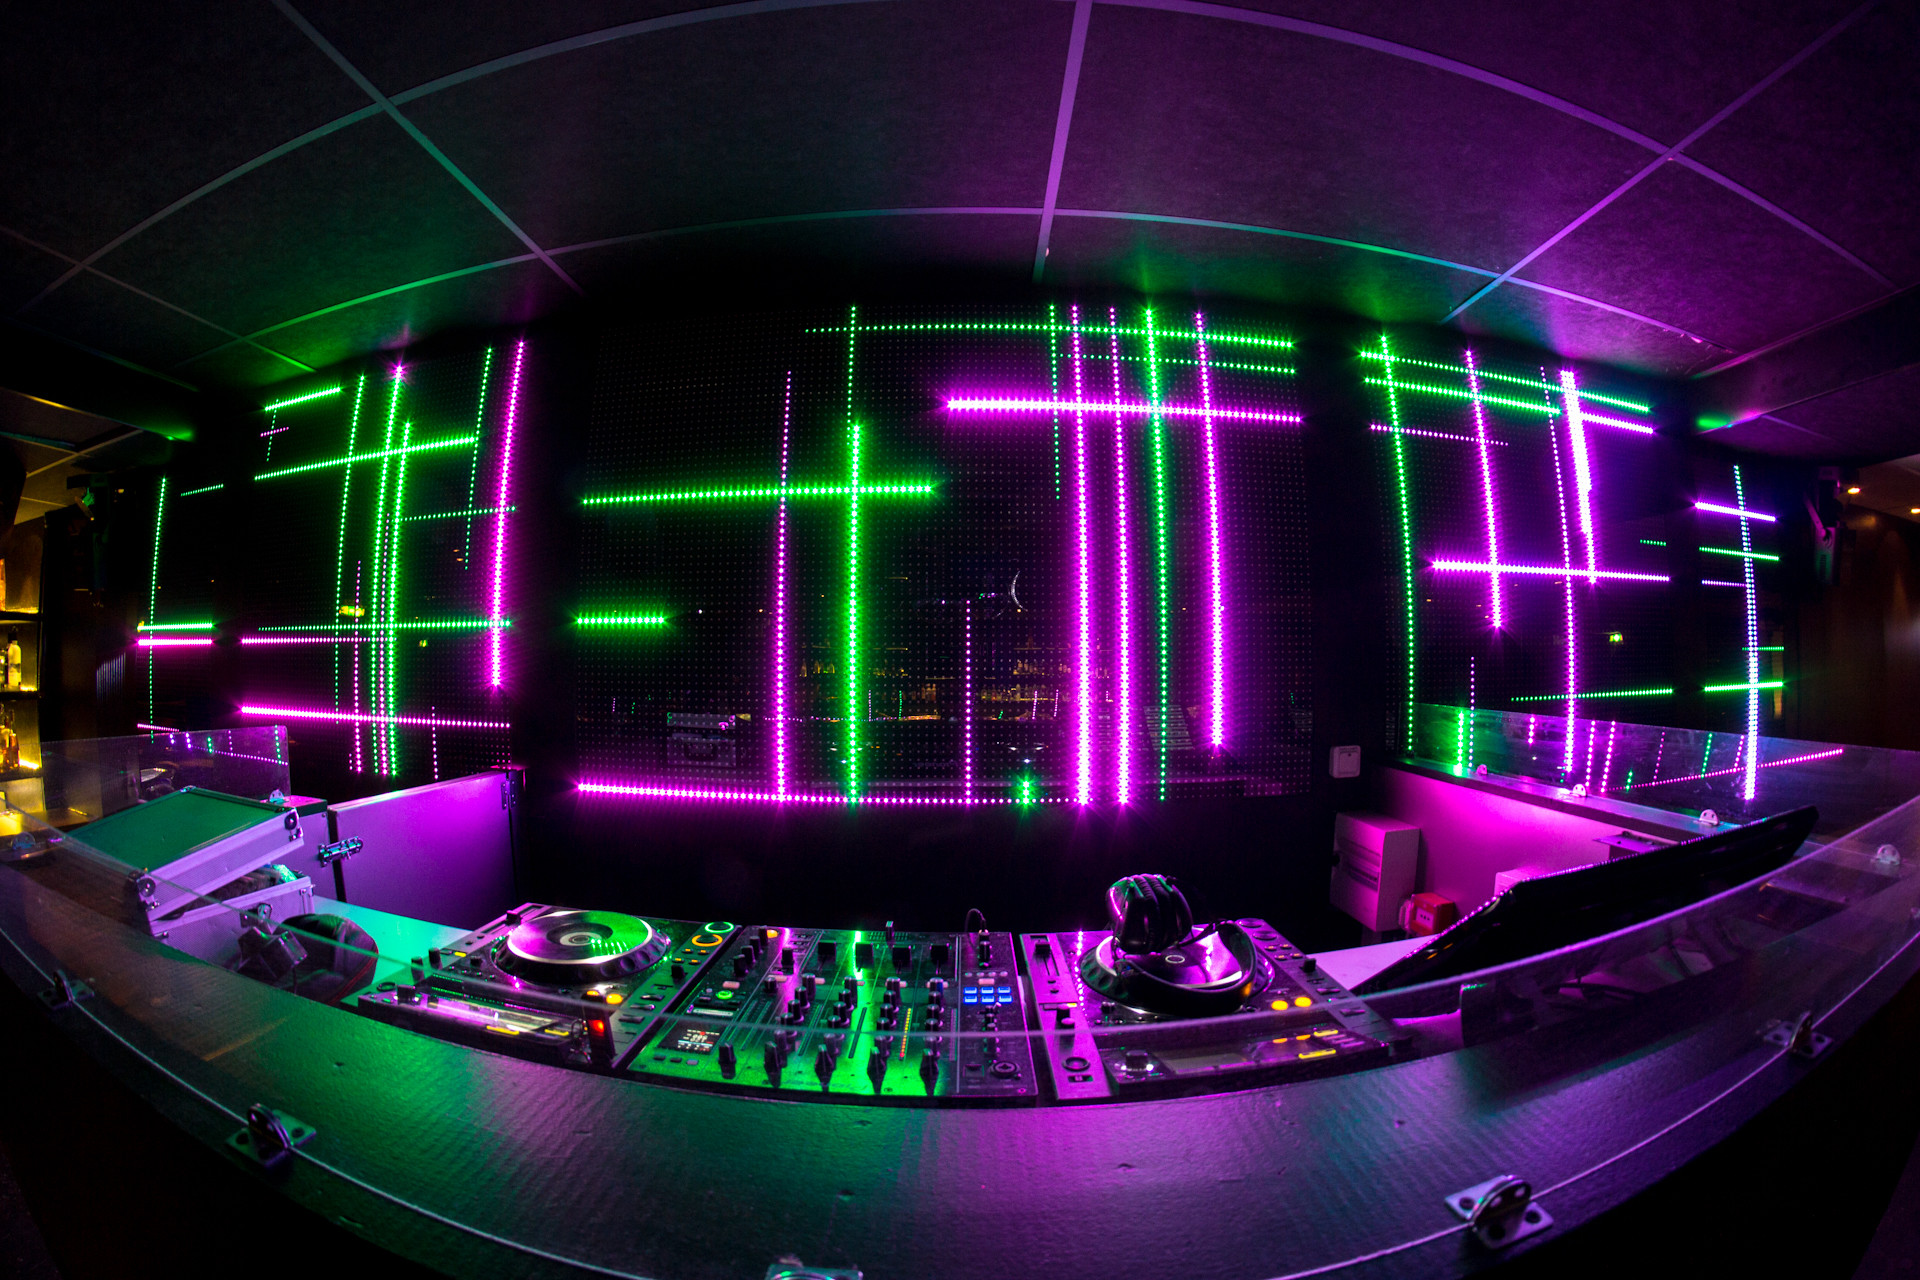 led video wall | Nightclub Research | Pinterest | Corporate events,  Nightclub design and Store design